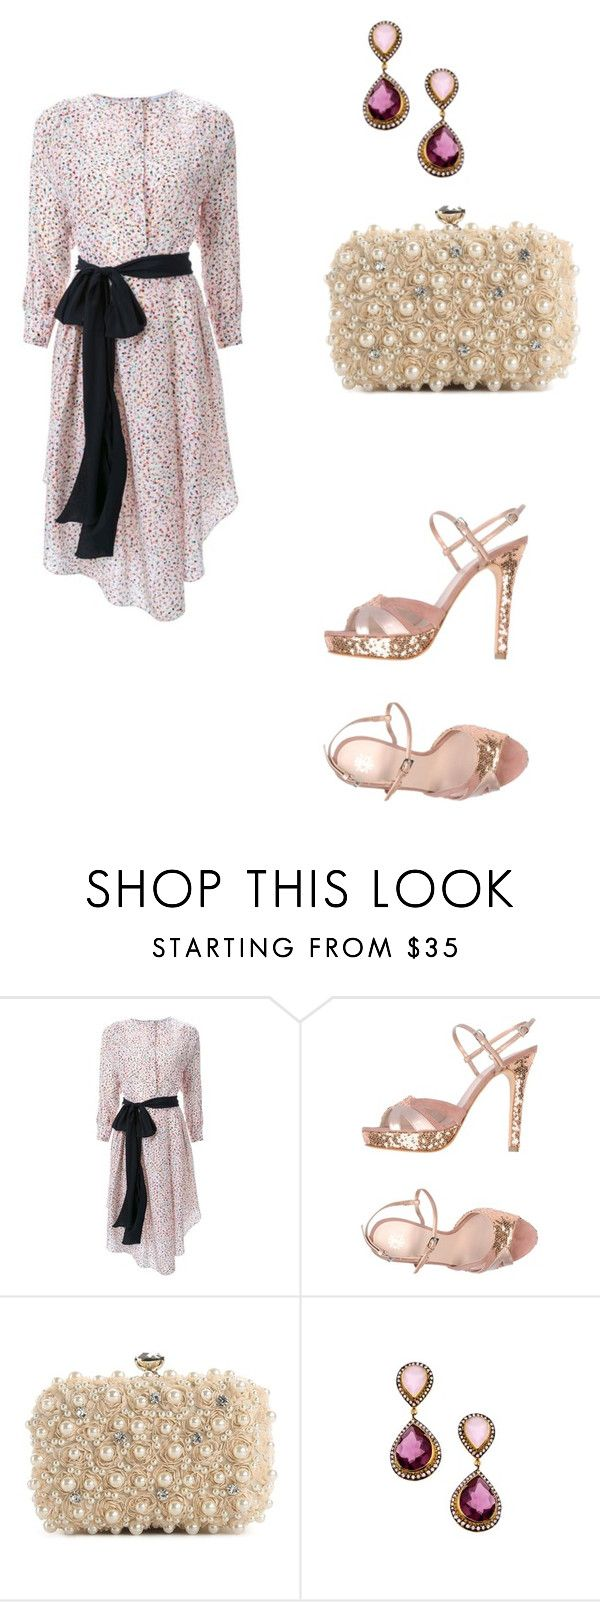 """""""Untitled #122"""" by rebeccahemphill ❤ liked on Polyvore featuring Jonathan Saunders, De Siena, Lulu Townsend and Meghna Designs"""